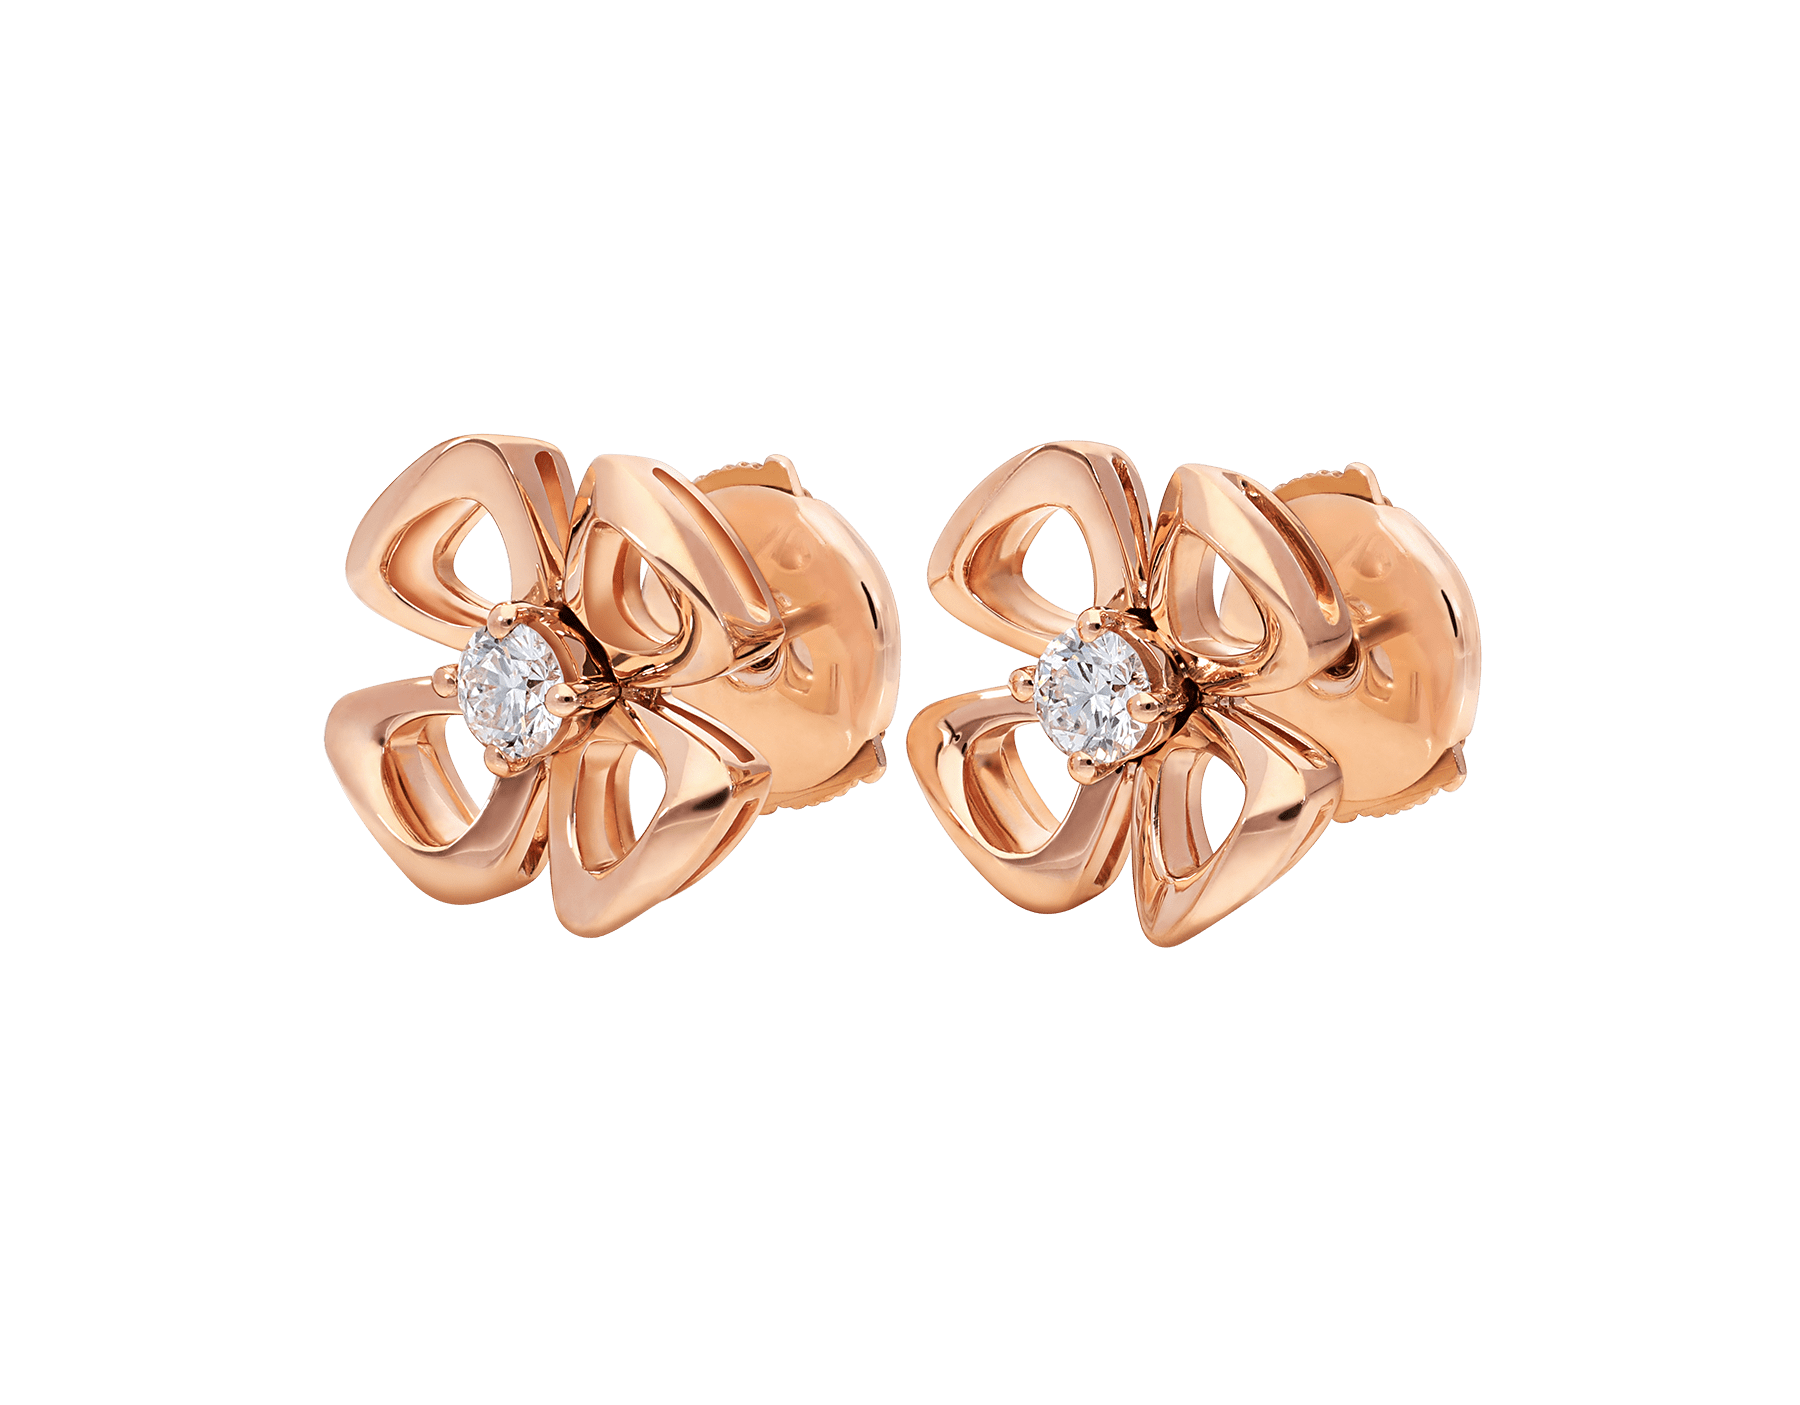 Boucles d'oreilles Fiorever en or rose 18 K serties de deux diamants de centre 355327 image 2